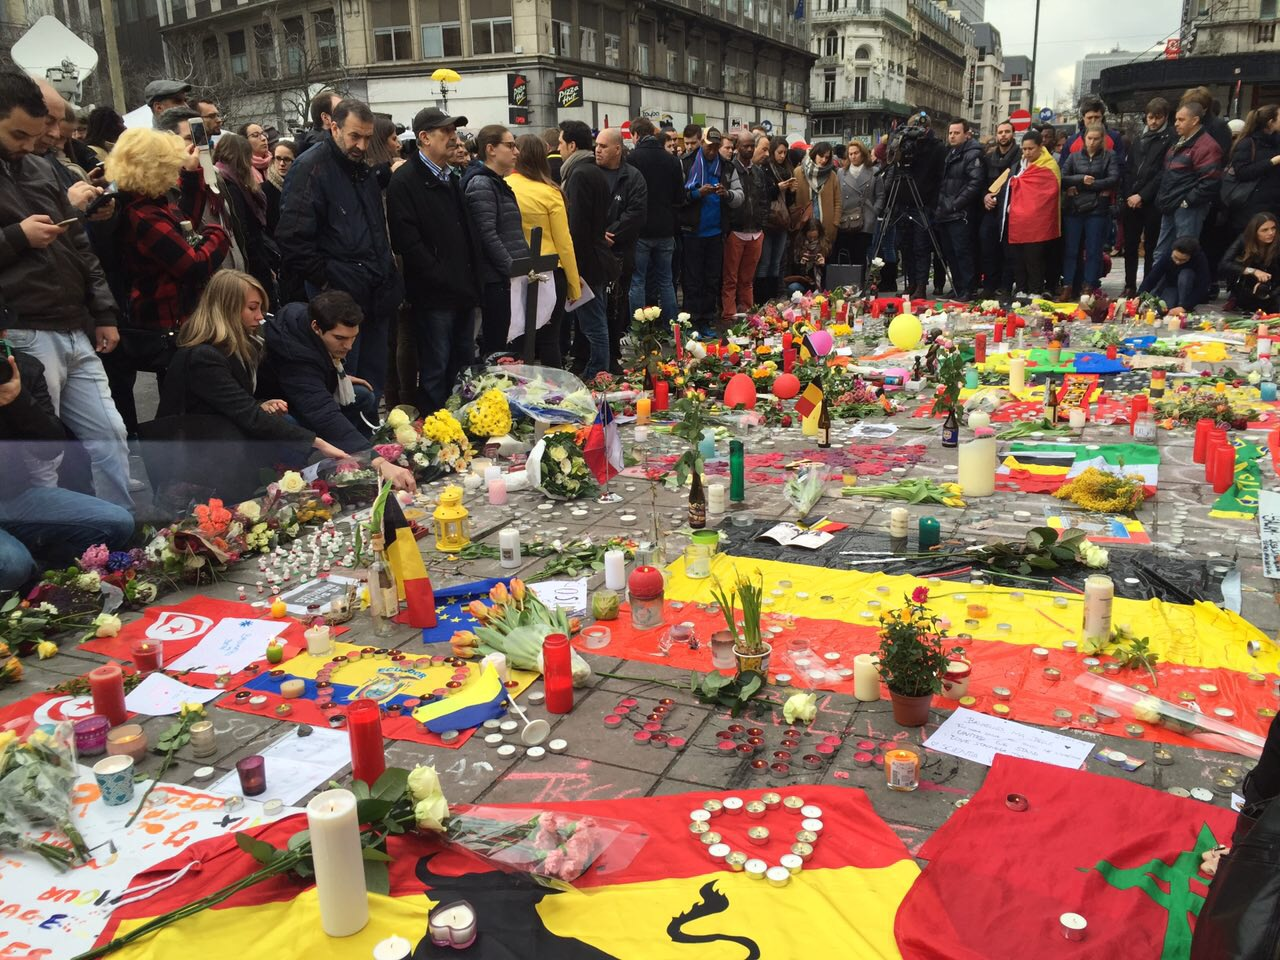 People gather around makeshift memorial in honor of terror attack victims in Brussels, Belgium, March 23, 2016. (N. Pourebrahim/ VOA)